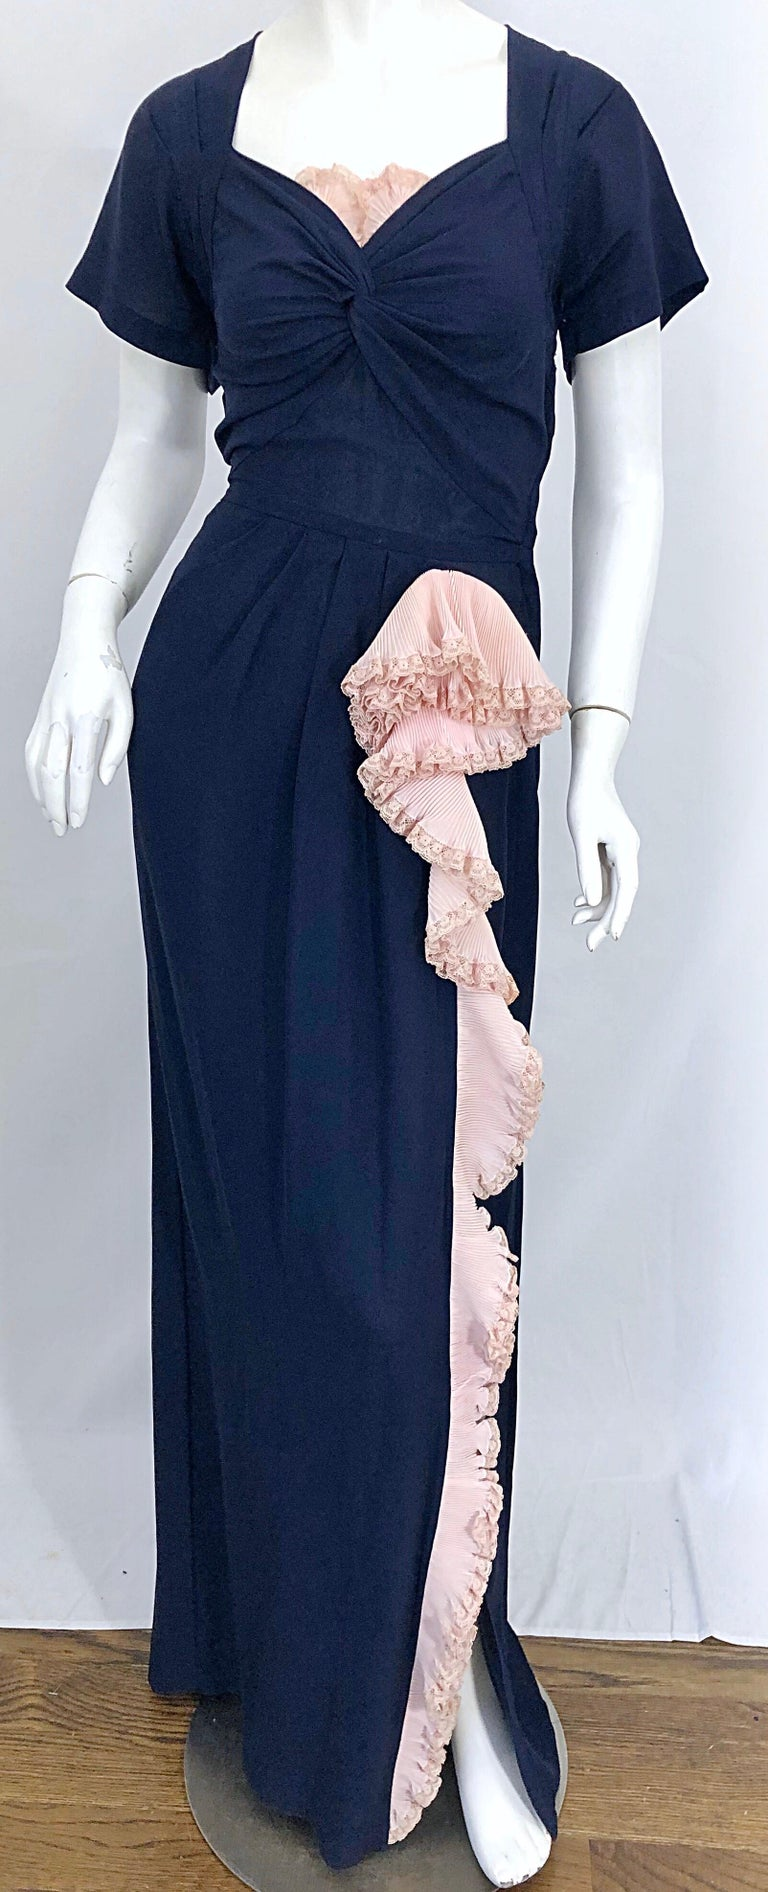 1940s Demi Couture Navy Blue + Pale Pink Short Sleeve 40s Vintage Gown / Dress For Sale 4